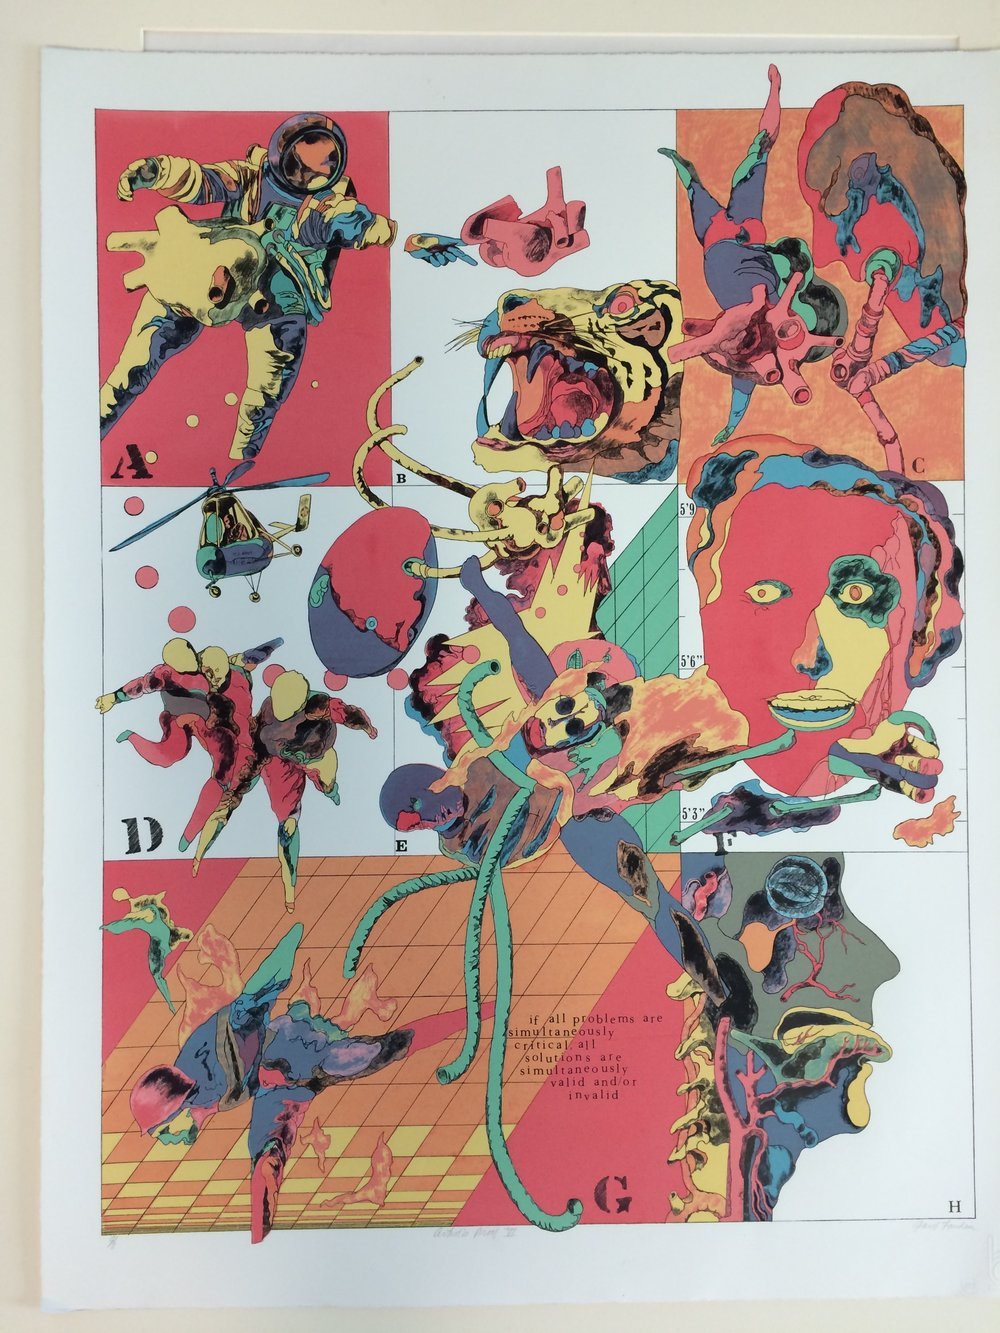 If,  Lithograph, Artist's Proof, 1975 Printed on Rives BFK paper by Michael Knigin at the Burston Graphic Center in Jerusalem, Israel Edition of 100